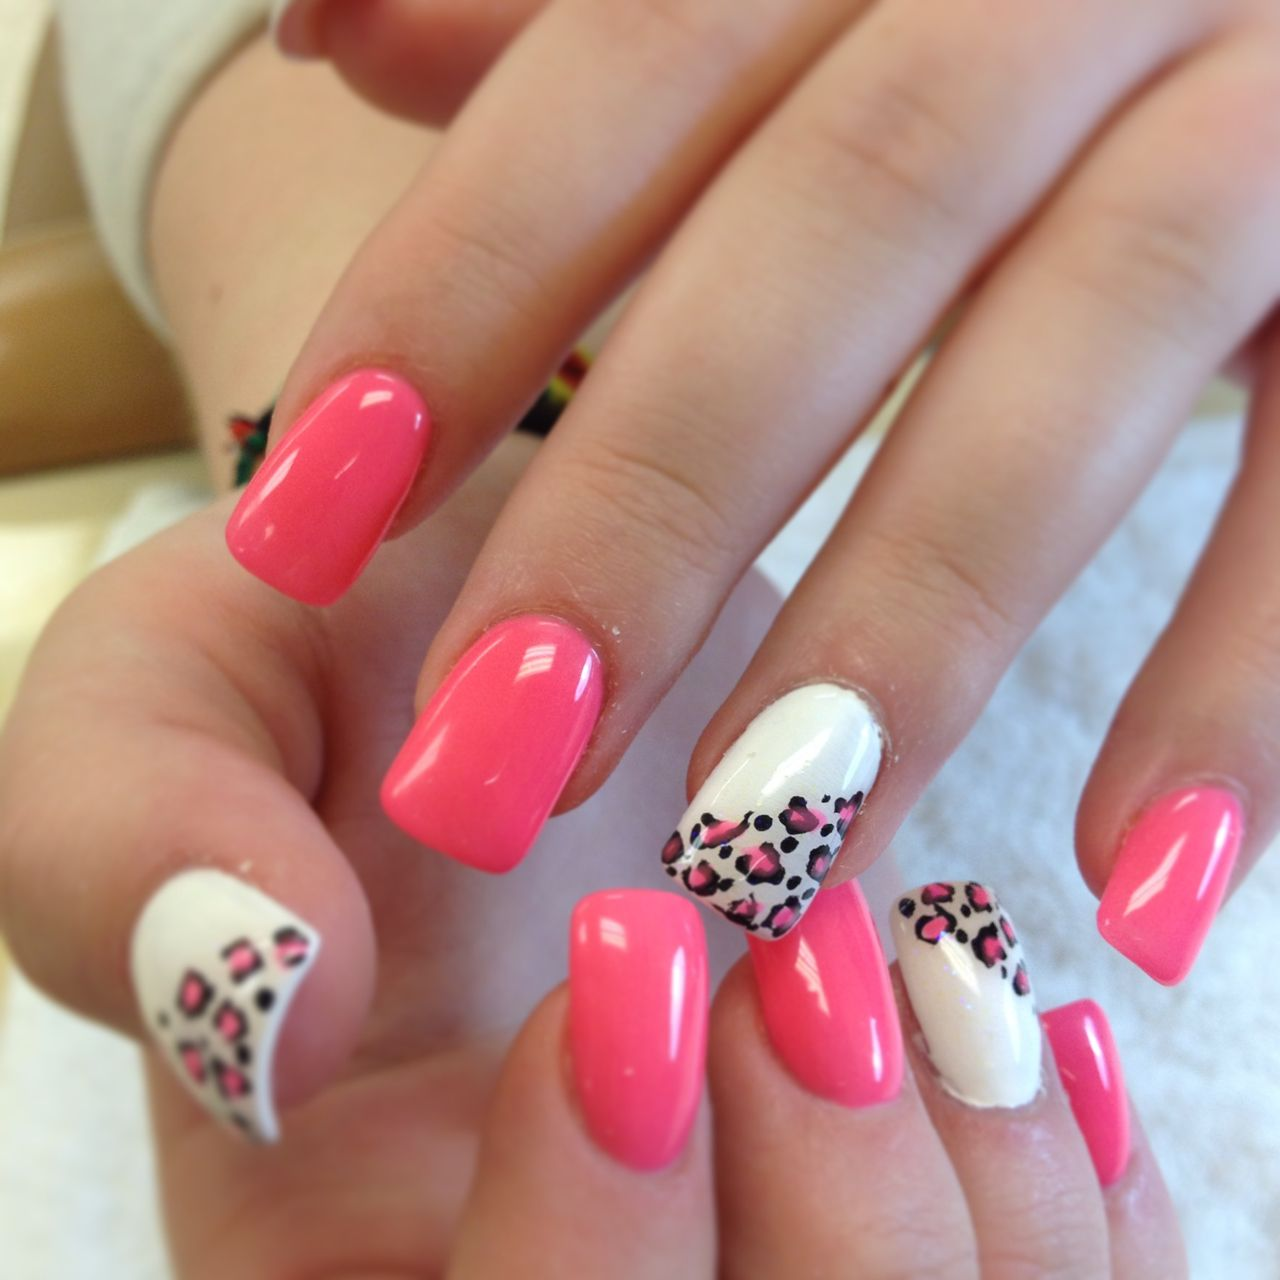 Nails With Pink White And Leopard Print Design Nails